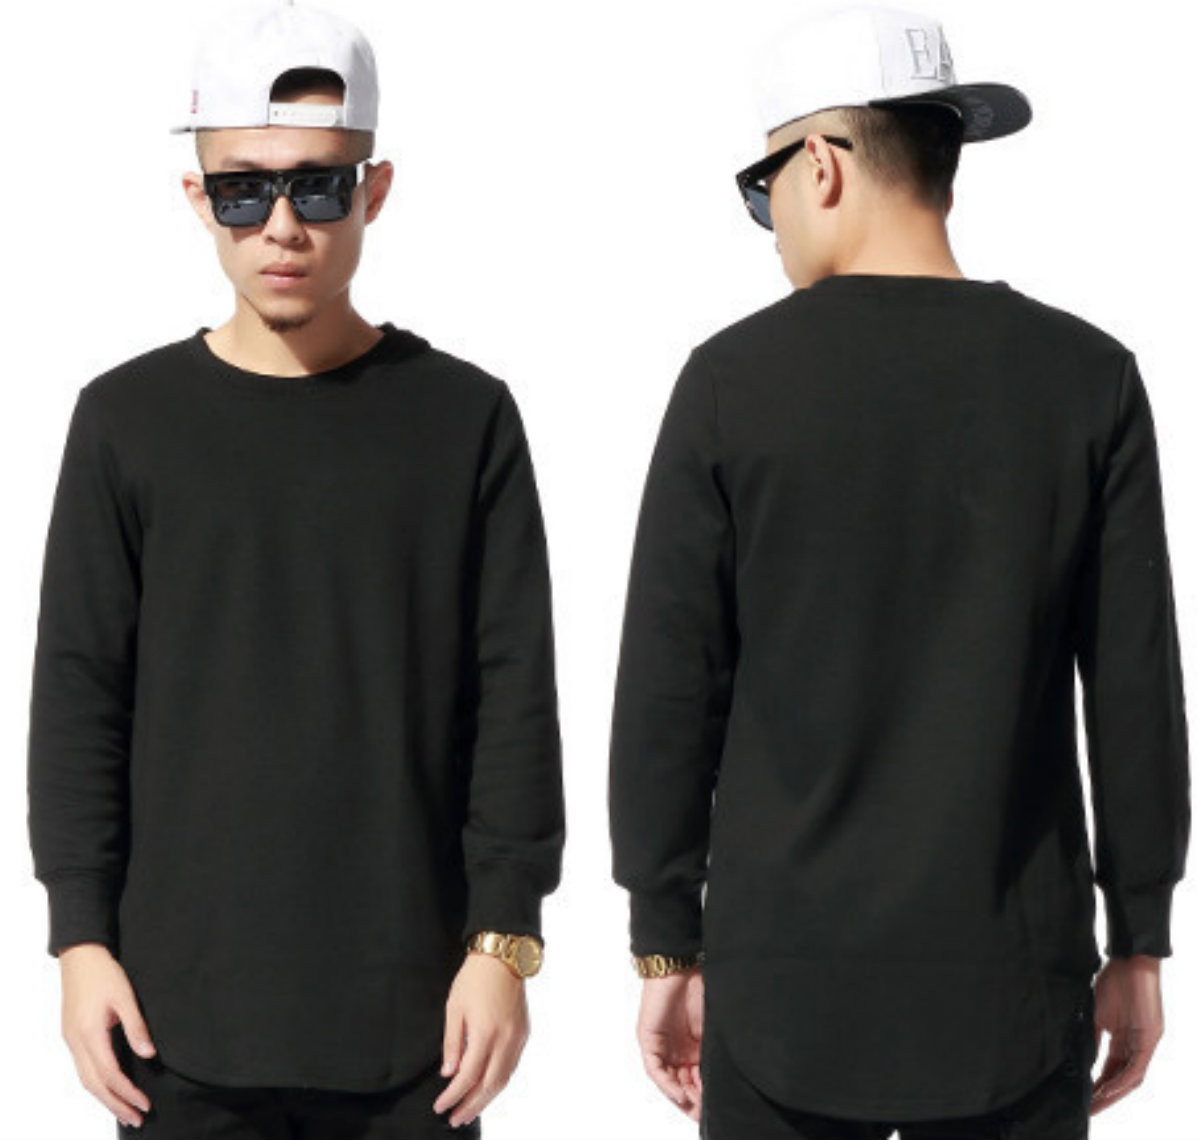 BrytCouture Hip Hop Celebrity Extended Long Sleeves Streetwear T-Shirts -  Black 09b7175a35cd